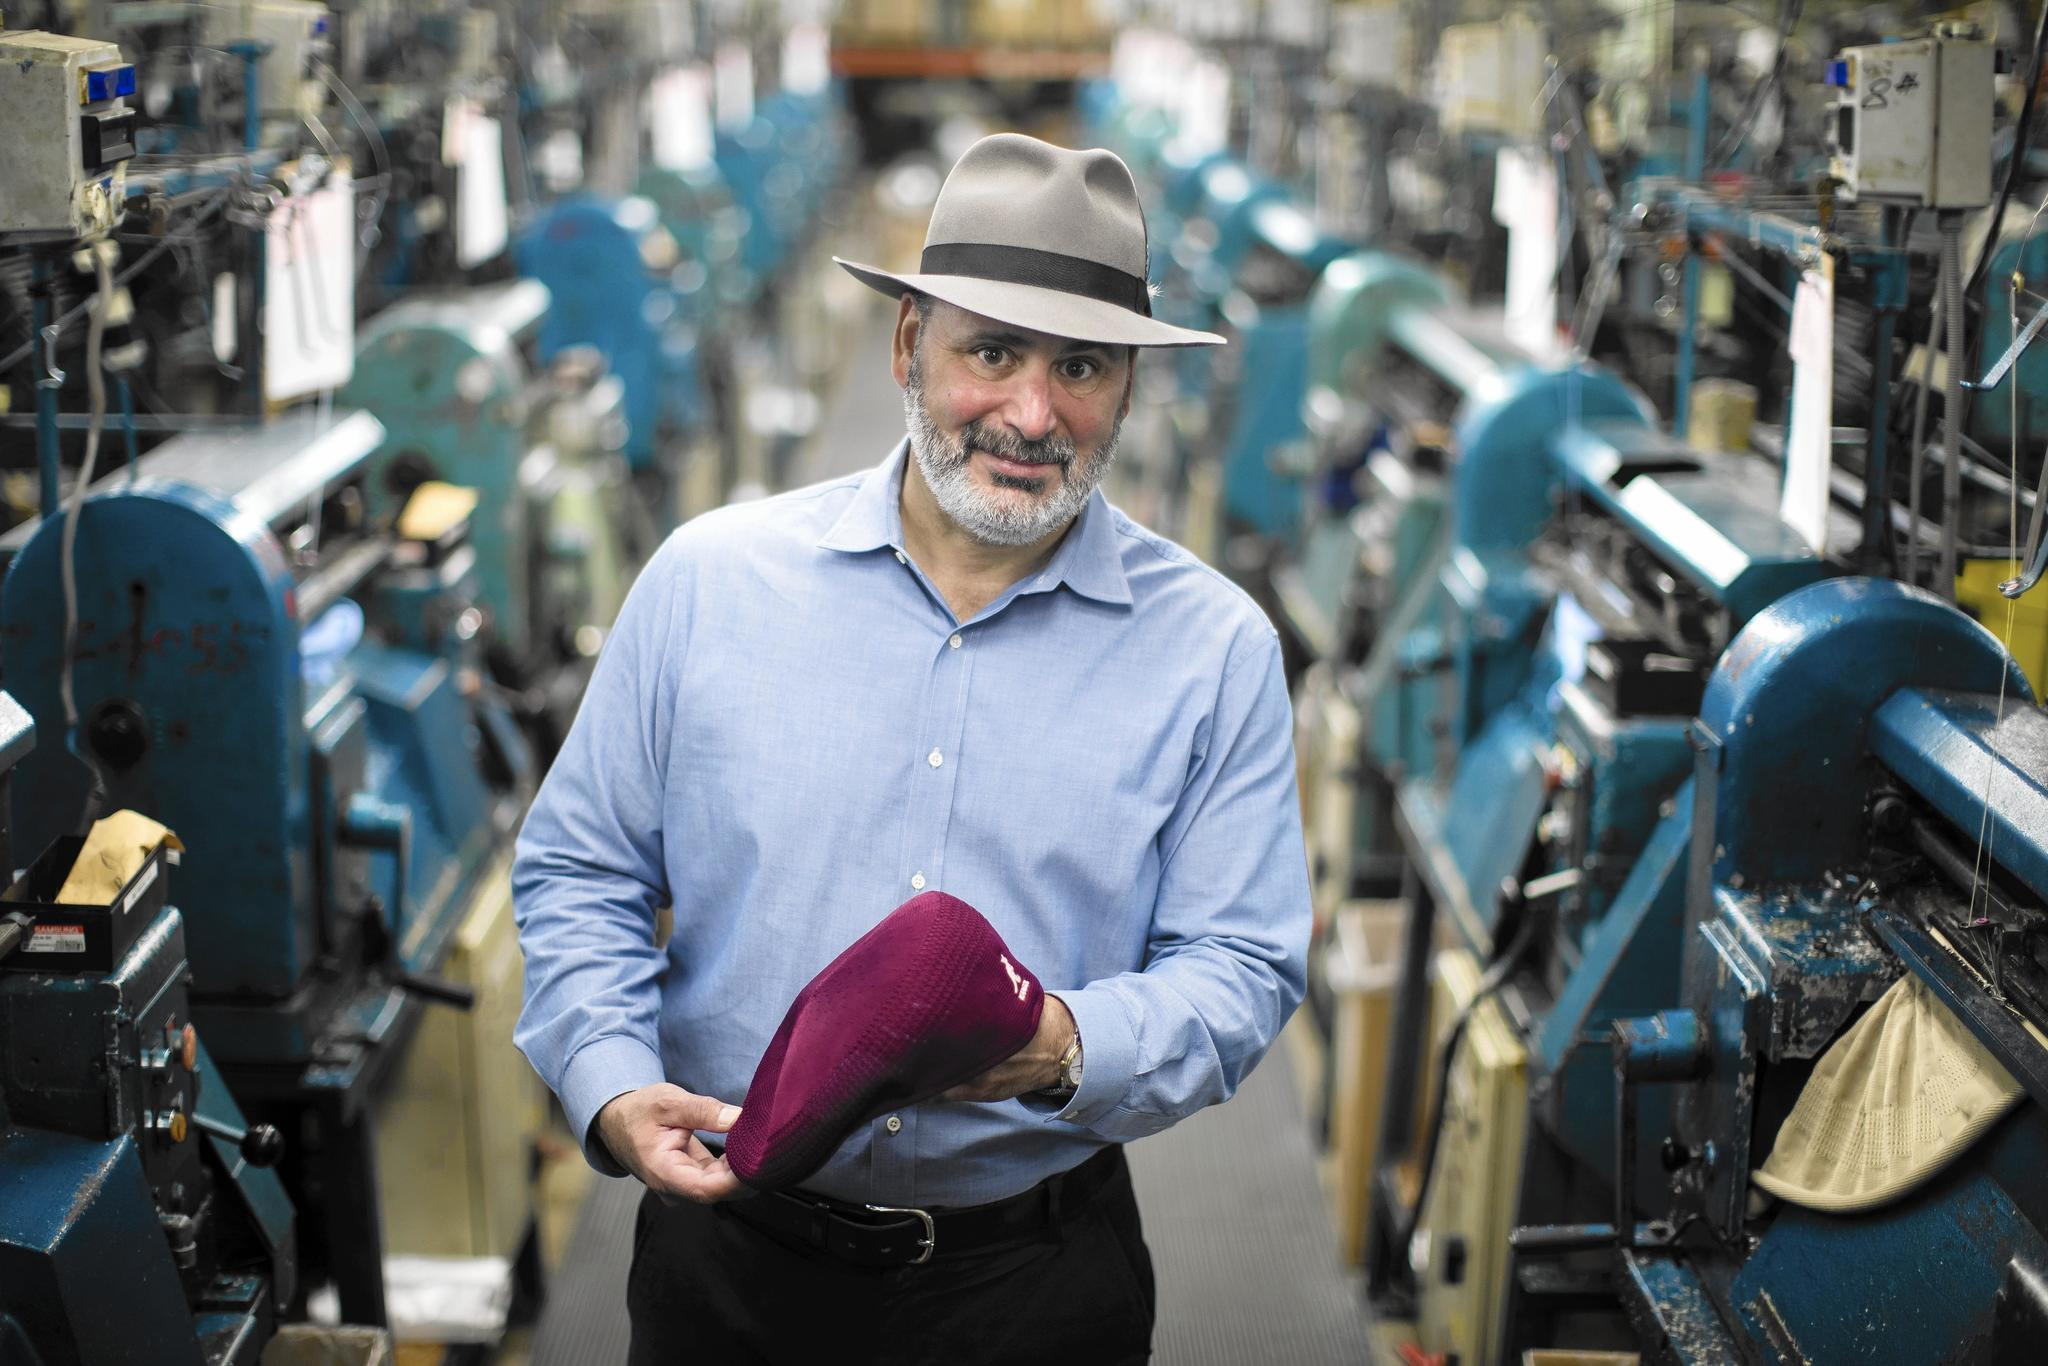 Move hatmaking into a U.S. factory  Easier said than done - Lehigh Valley  Business Cycle 86769f3c7426